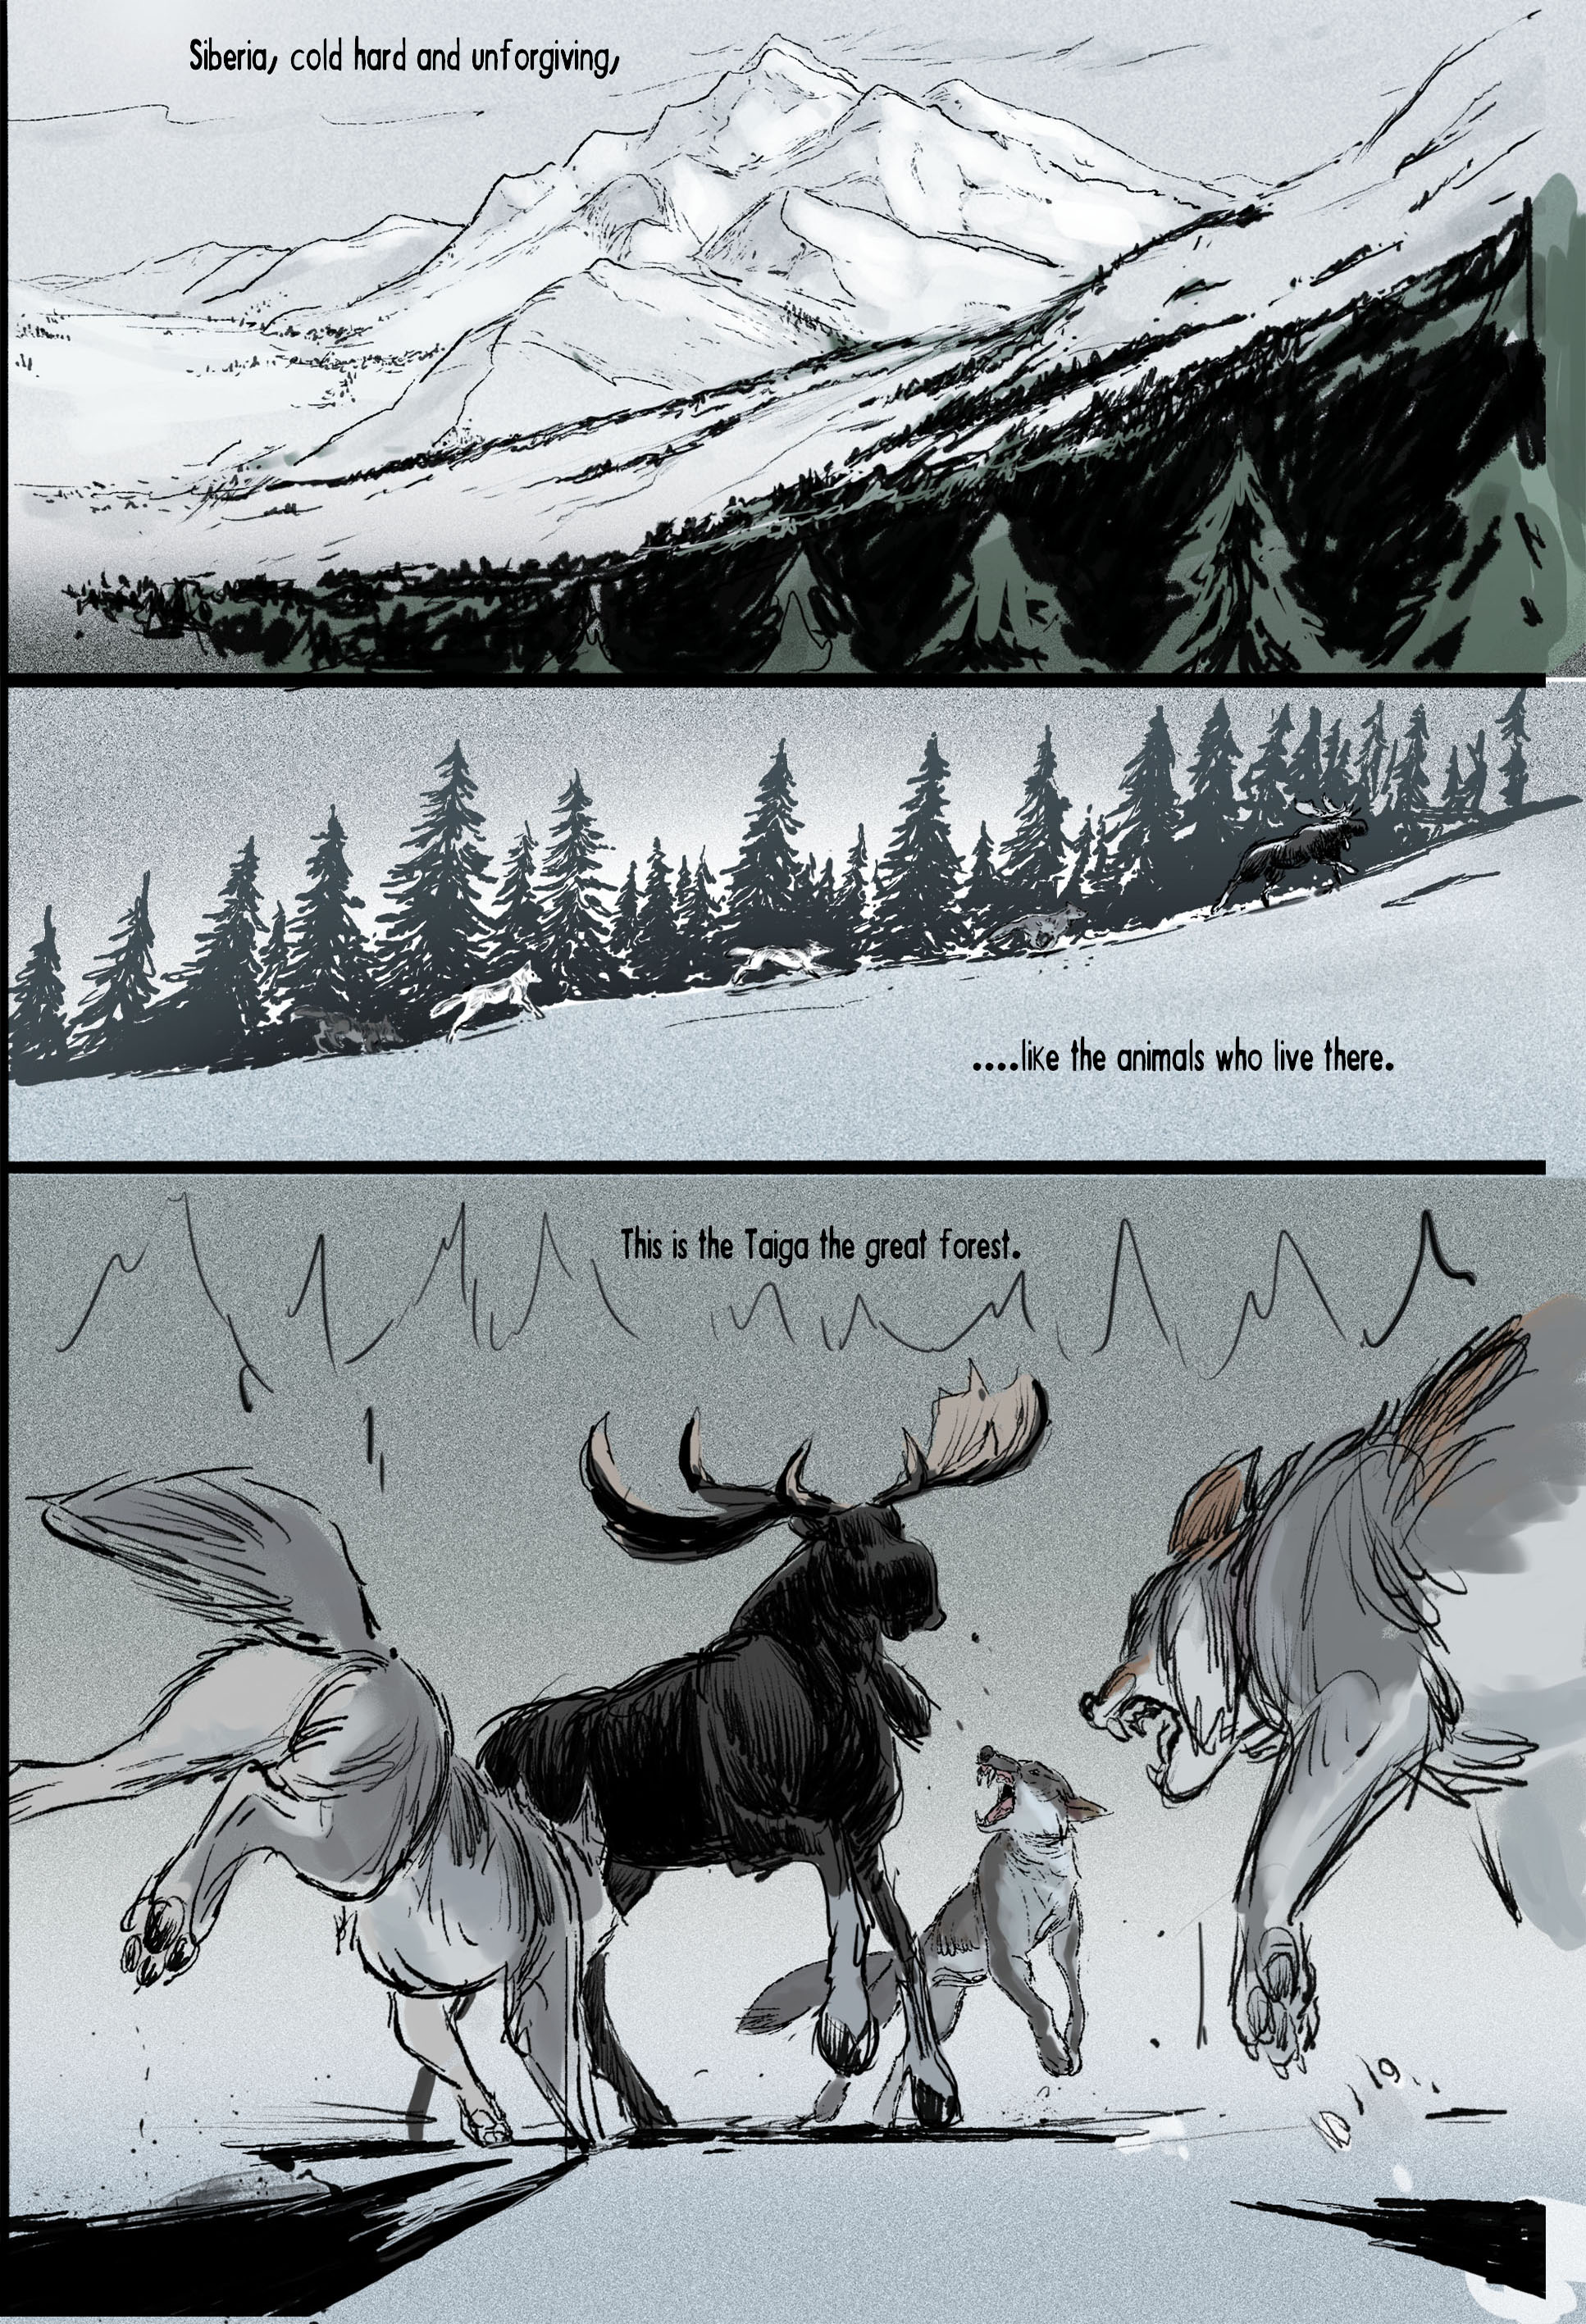 The original opening I drew a few years ago is very similar. I decided to expand the moment to show the pack hunting and establish a few of the characters.